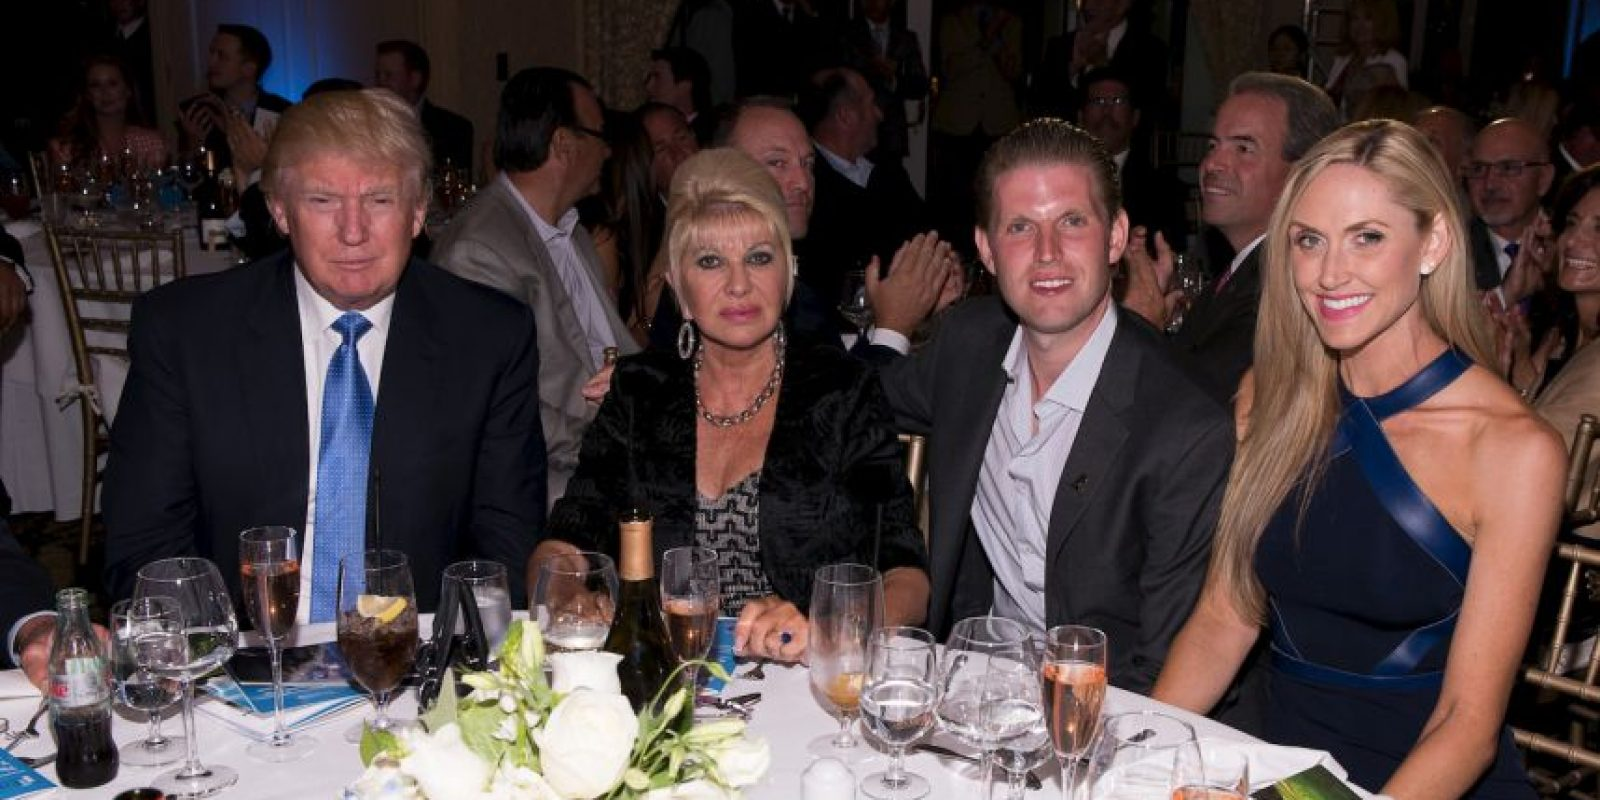 Ivana se ha casado dos veces después de su divorcio con Donald Trump, Foto: Getty Images